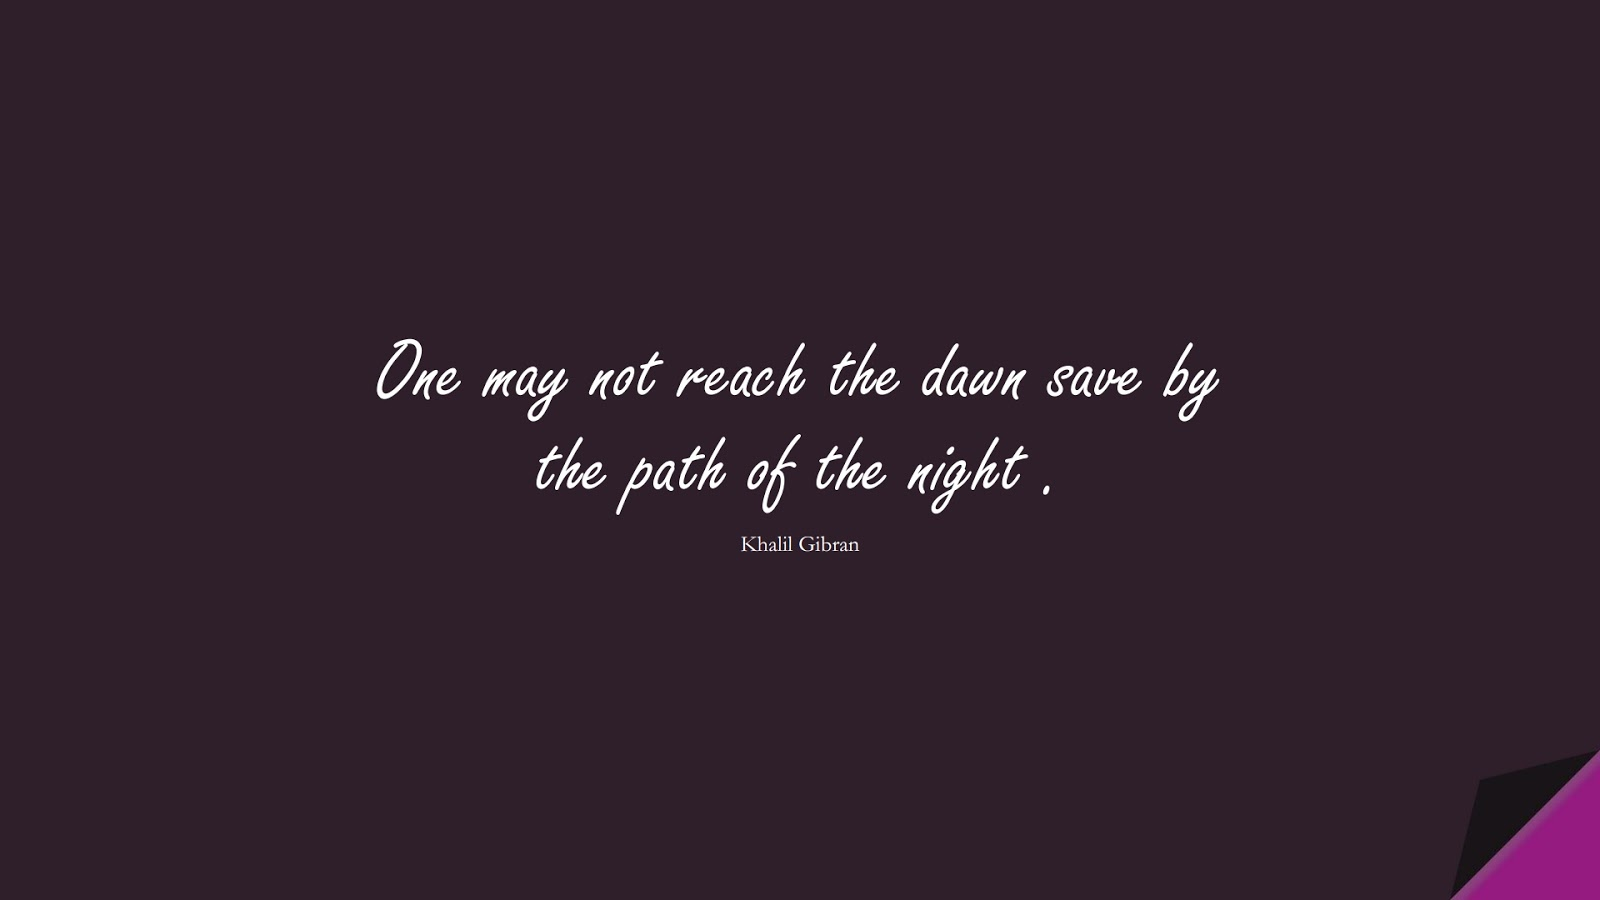 One may not reach the dawn save by the path of the night . (Khalil Gibran);  #InspirationalQuotes